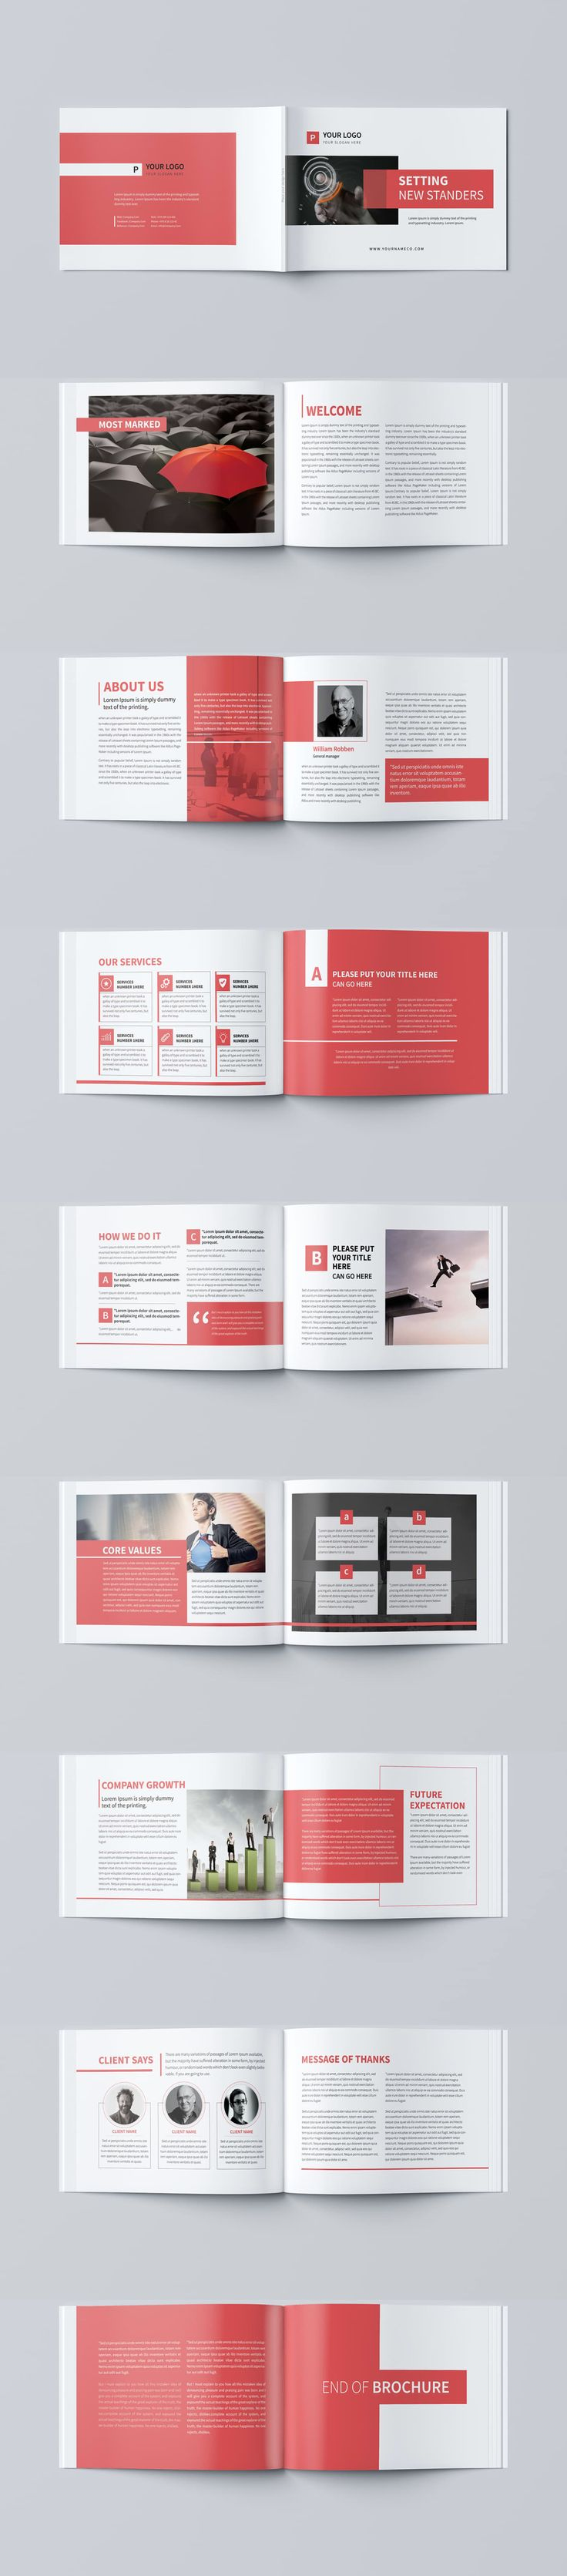 minimal business brochure template psd - Booklet Design Ideas